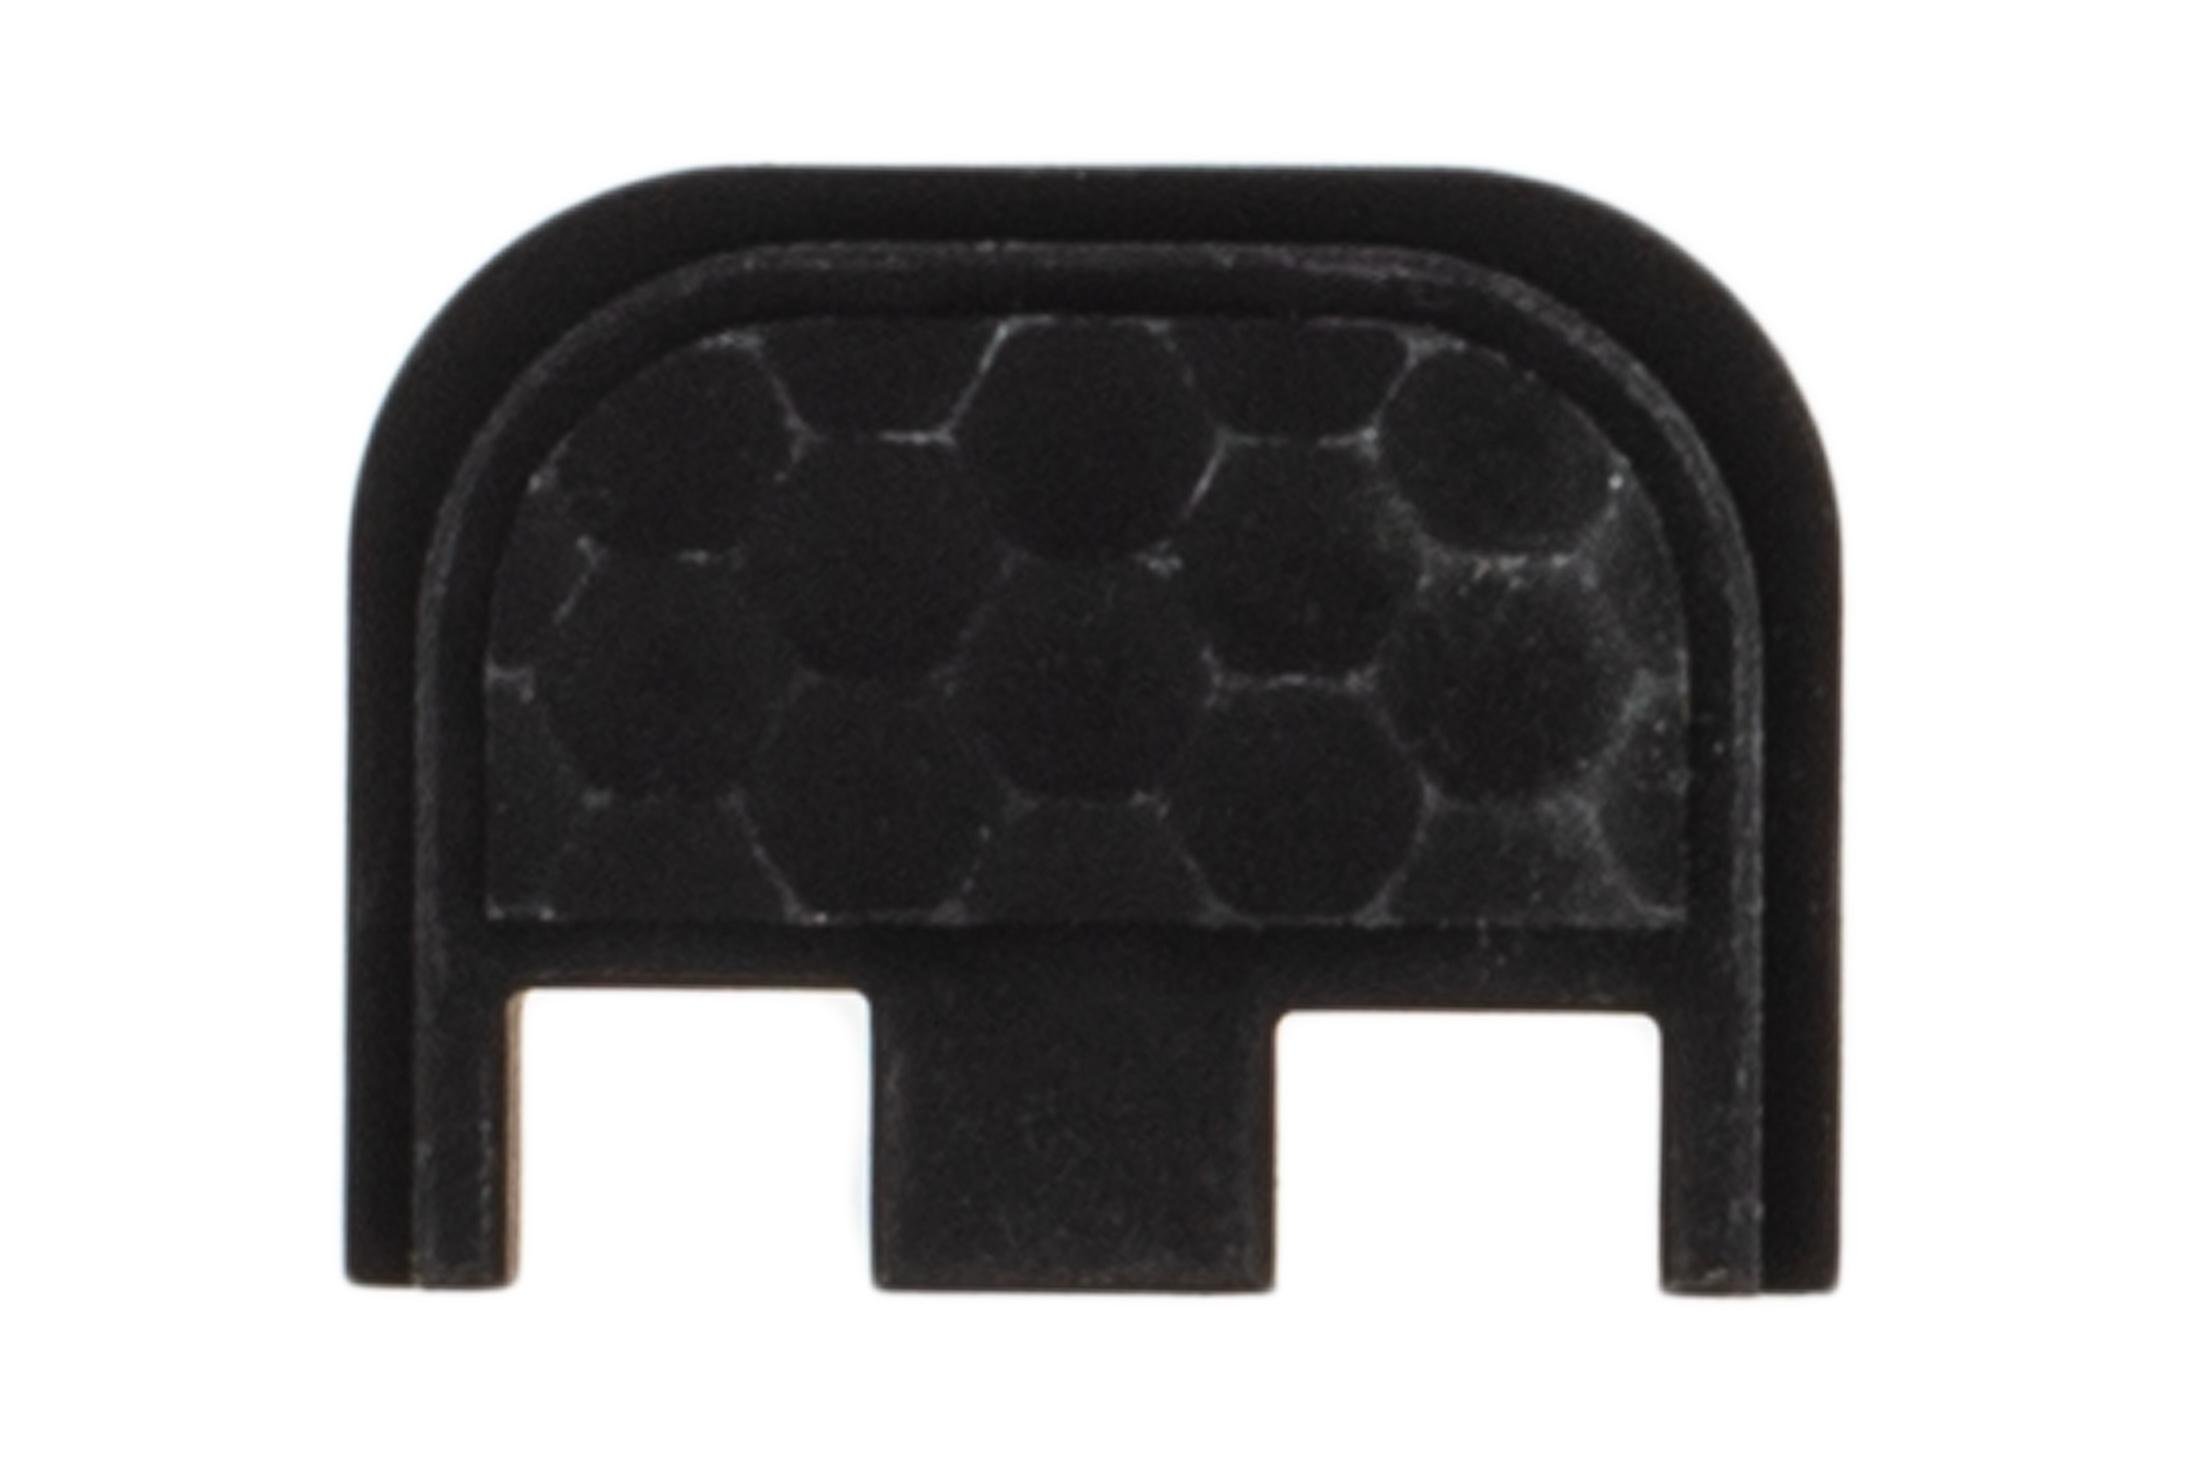 Zev Tech Aluminum Glock Back Plate features a honeycomb pattern